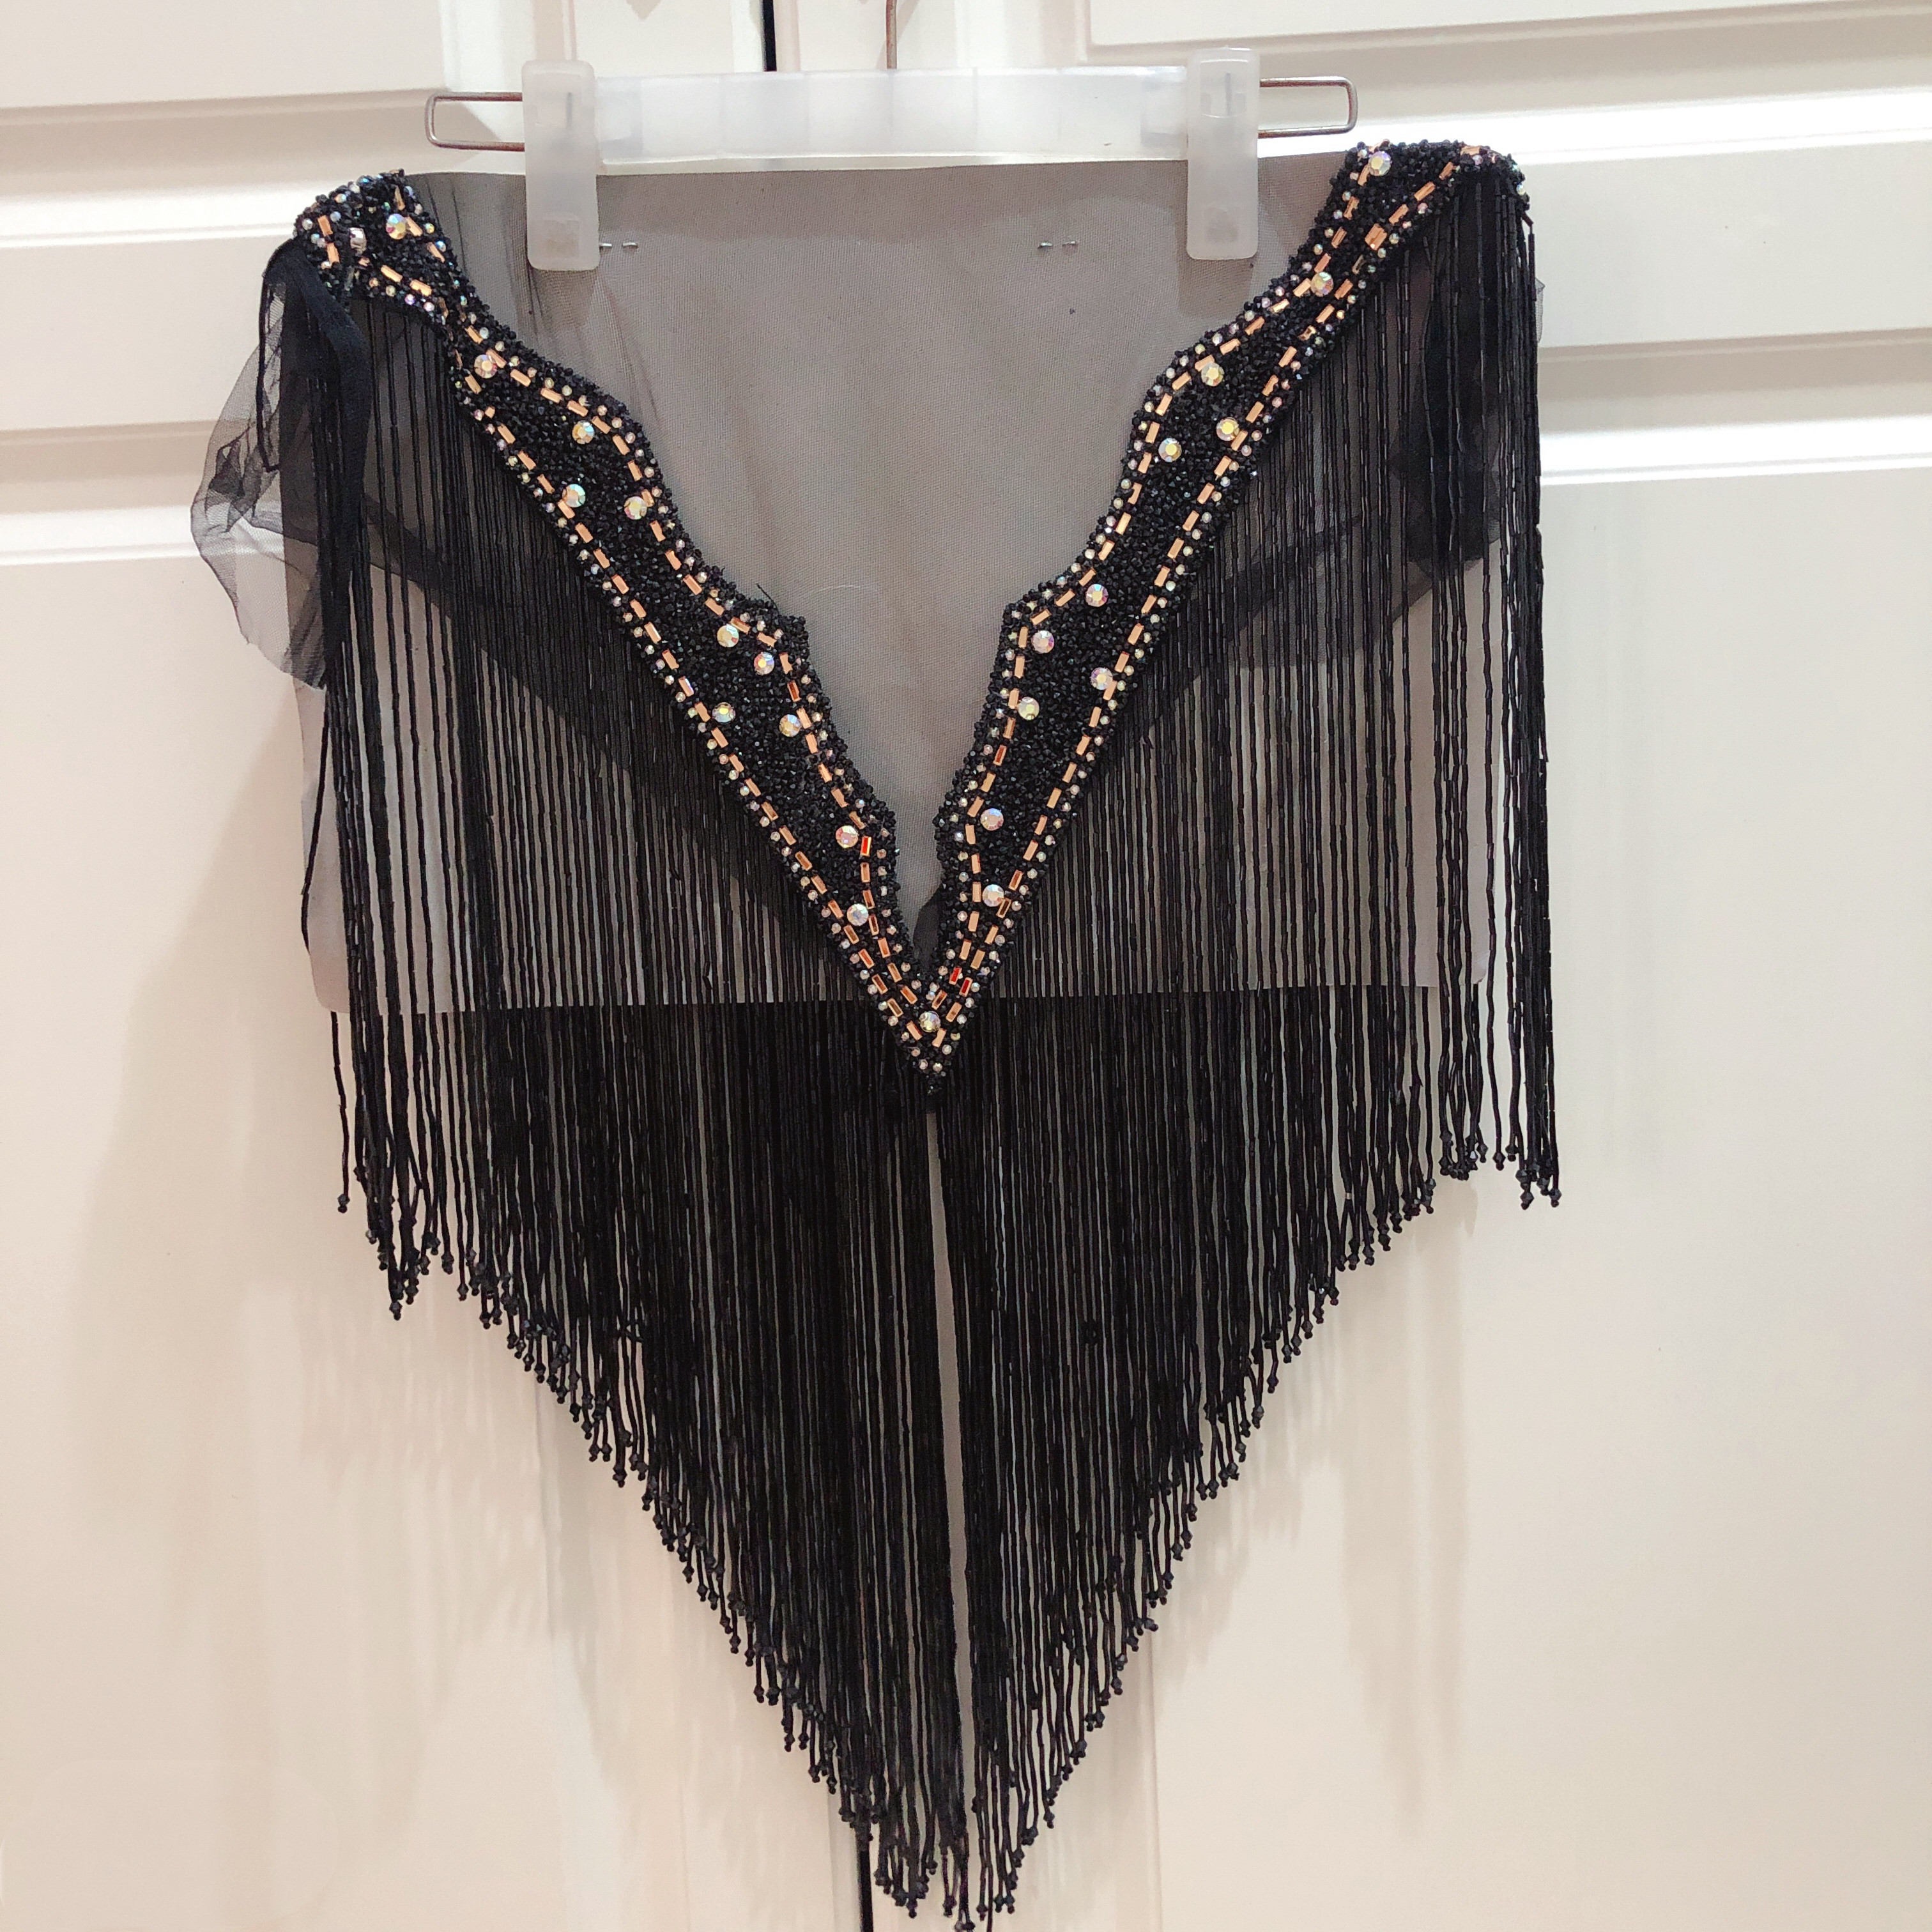 hot sale new wedding embroidered crystal beaded tassels collar appliques many color Deep-V neckline with more fringe